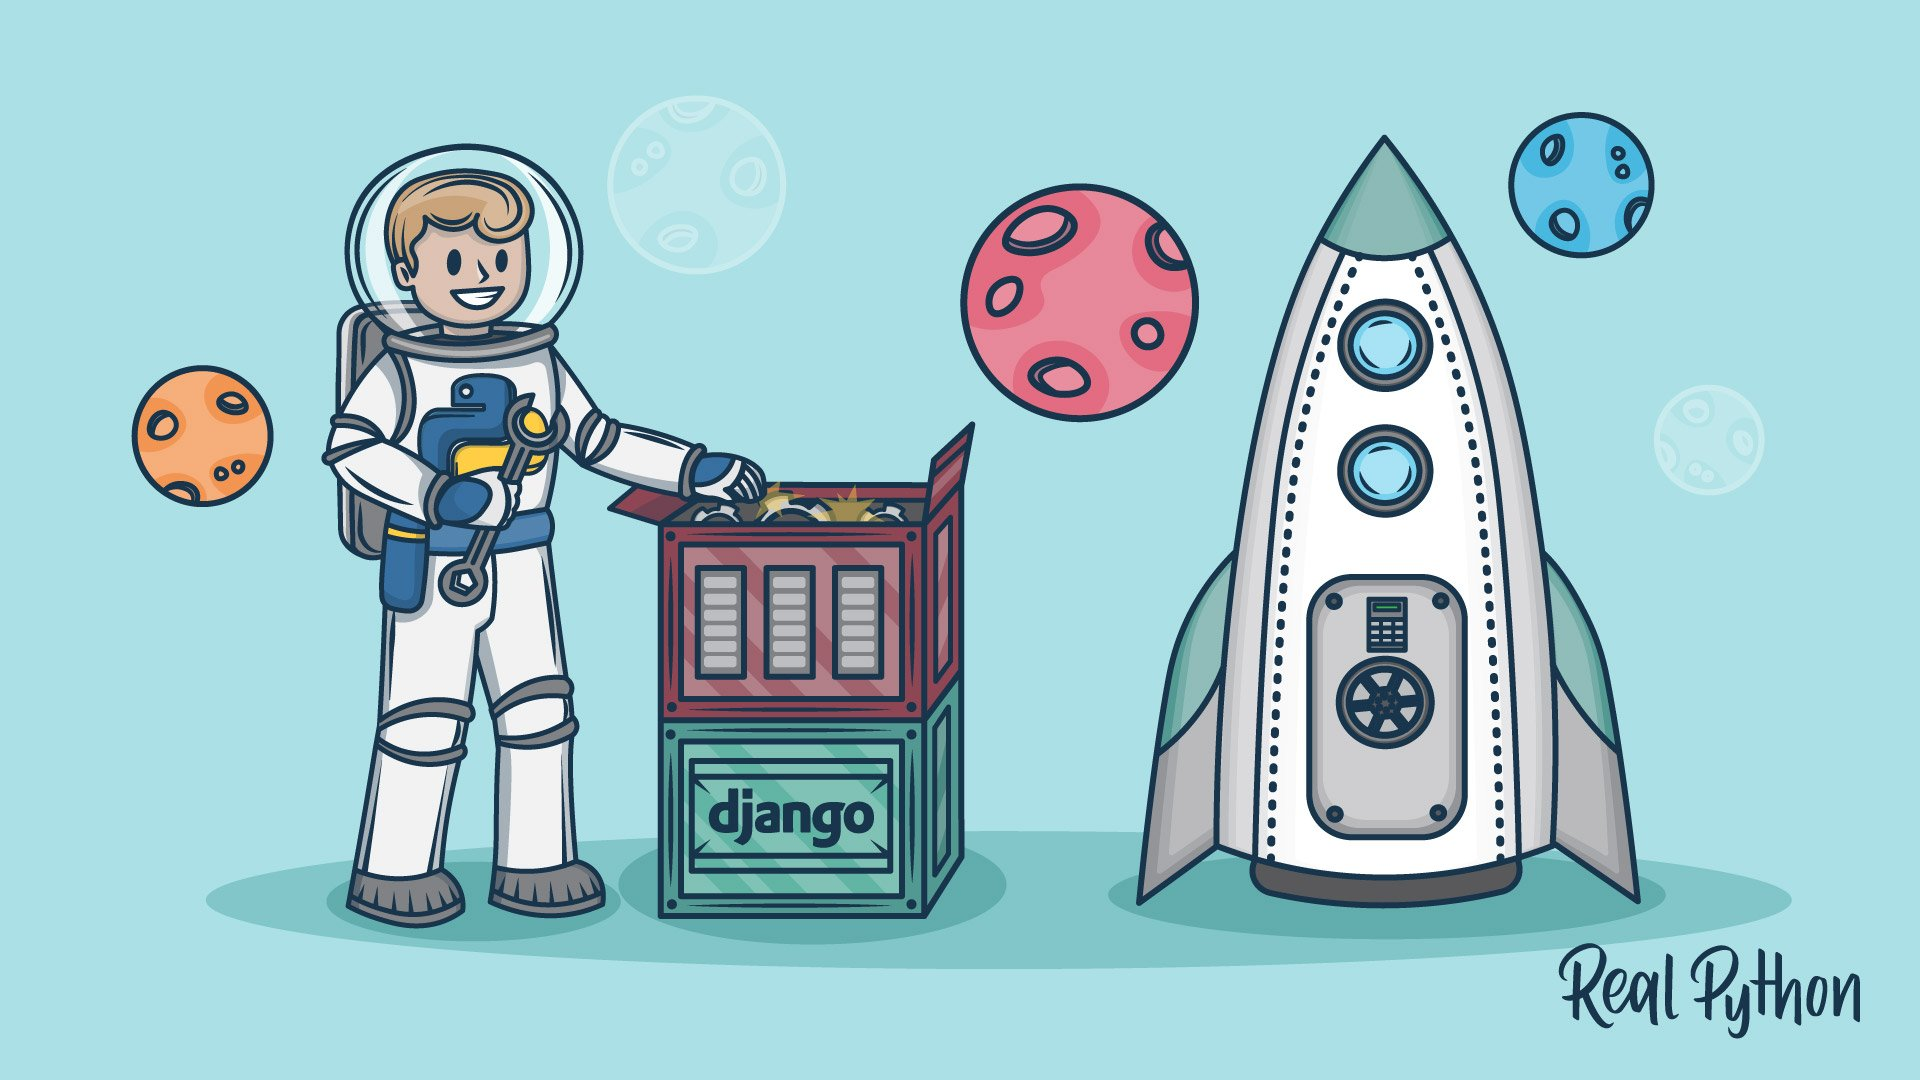 Starting a Django Project – Real Python